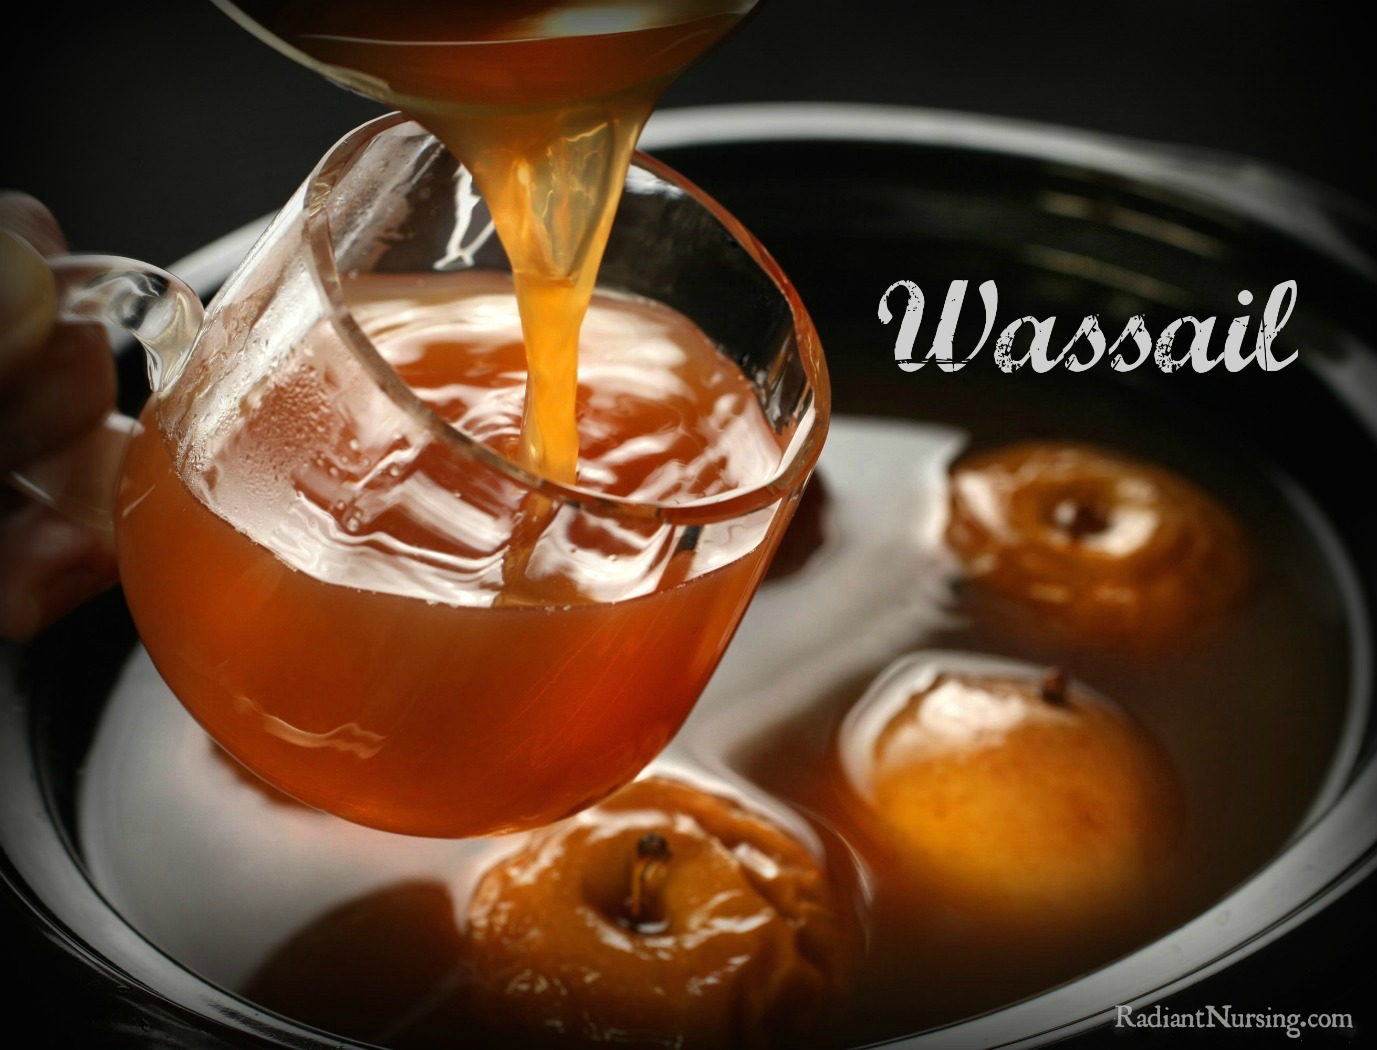 A delicious Wassail drink with an apple cider base. To be enjoyed at Christmas and New Year's.